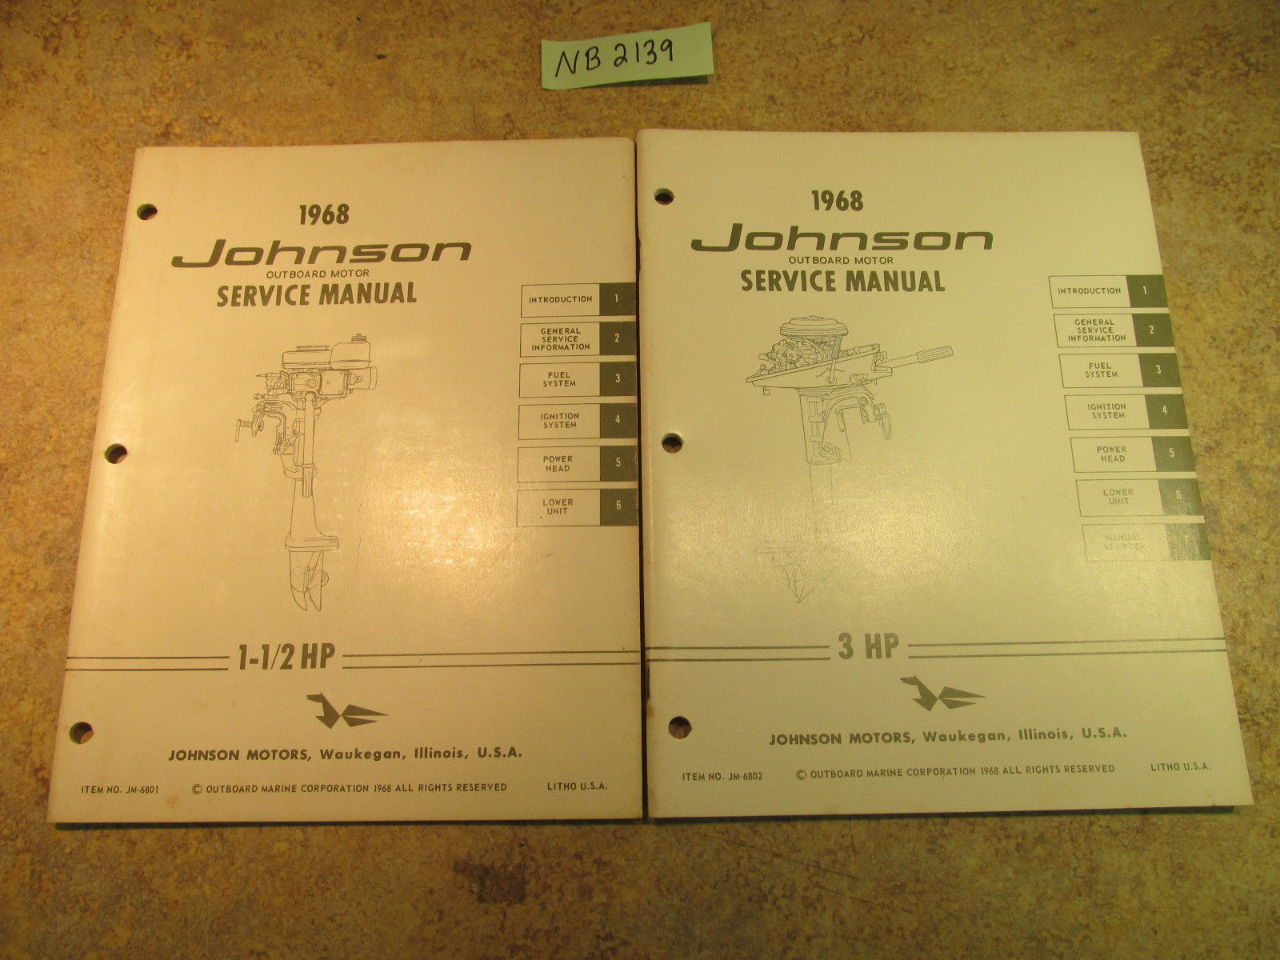 2016 Johnson 50hp Outboard Manual